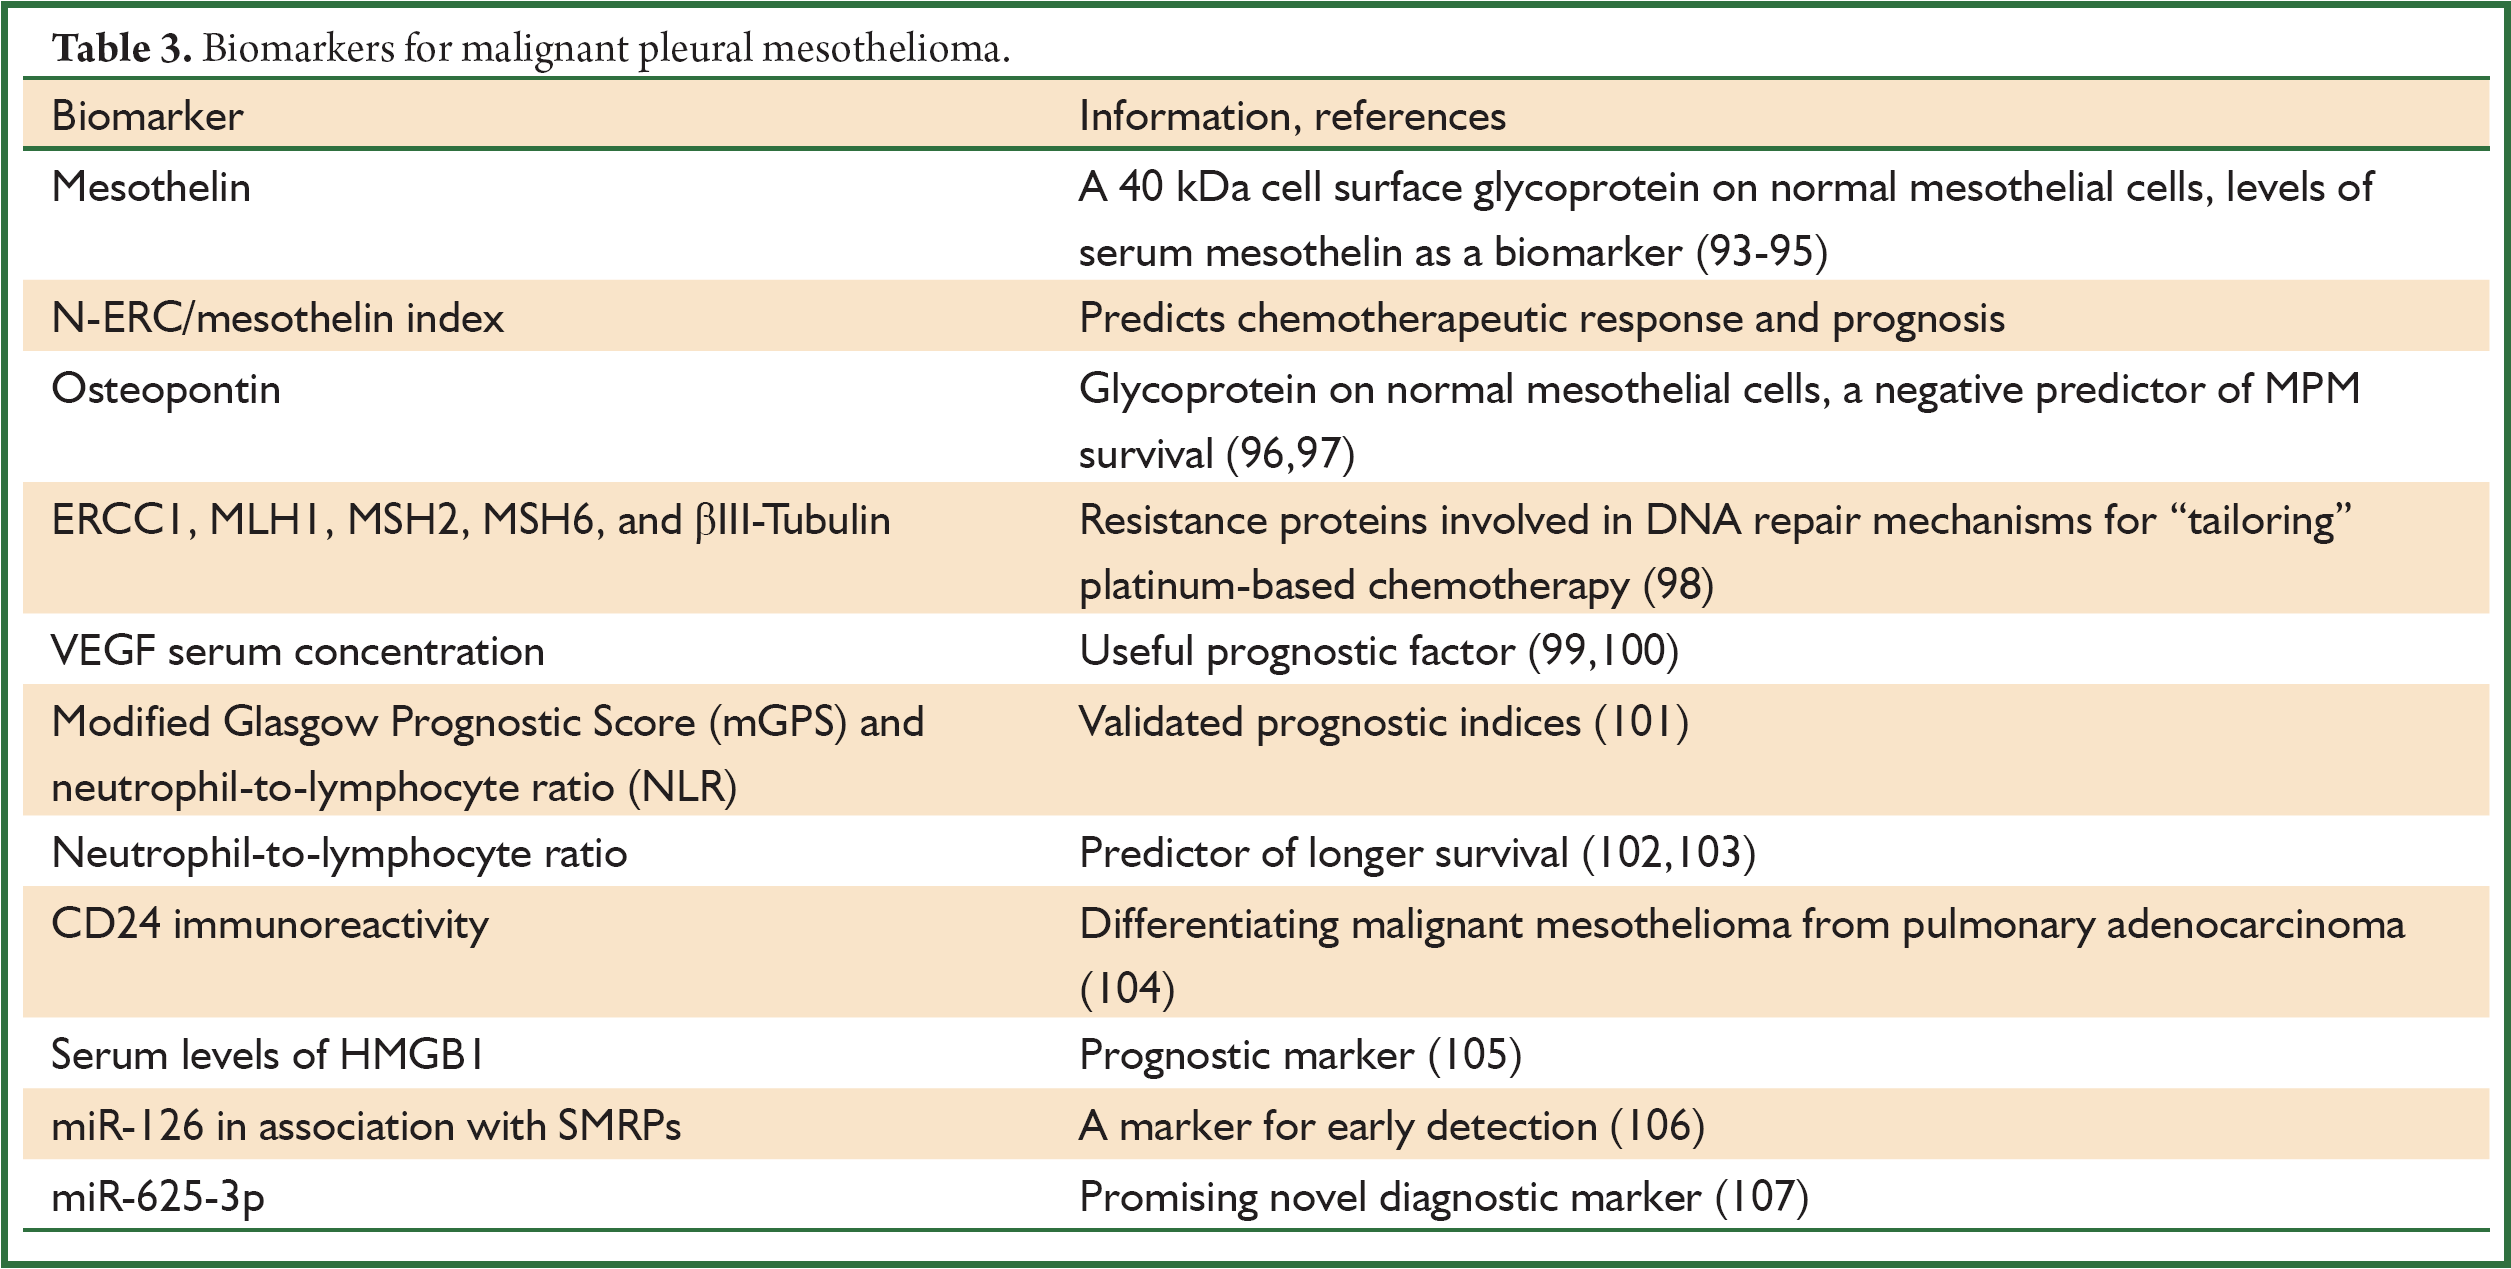 Biomarkers For Malignant Pleural Mesothelioma Full Table